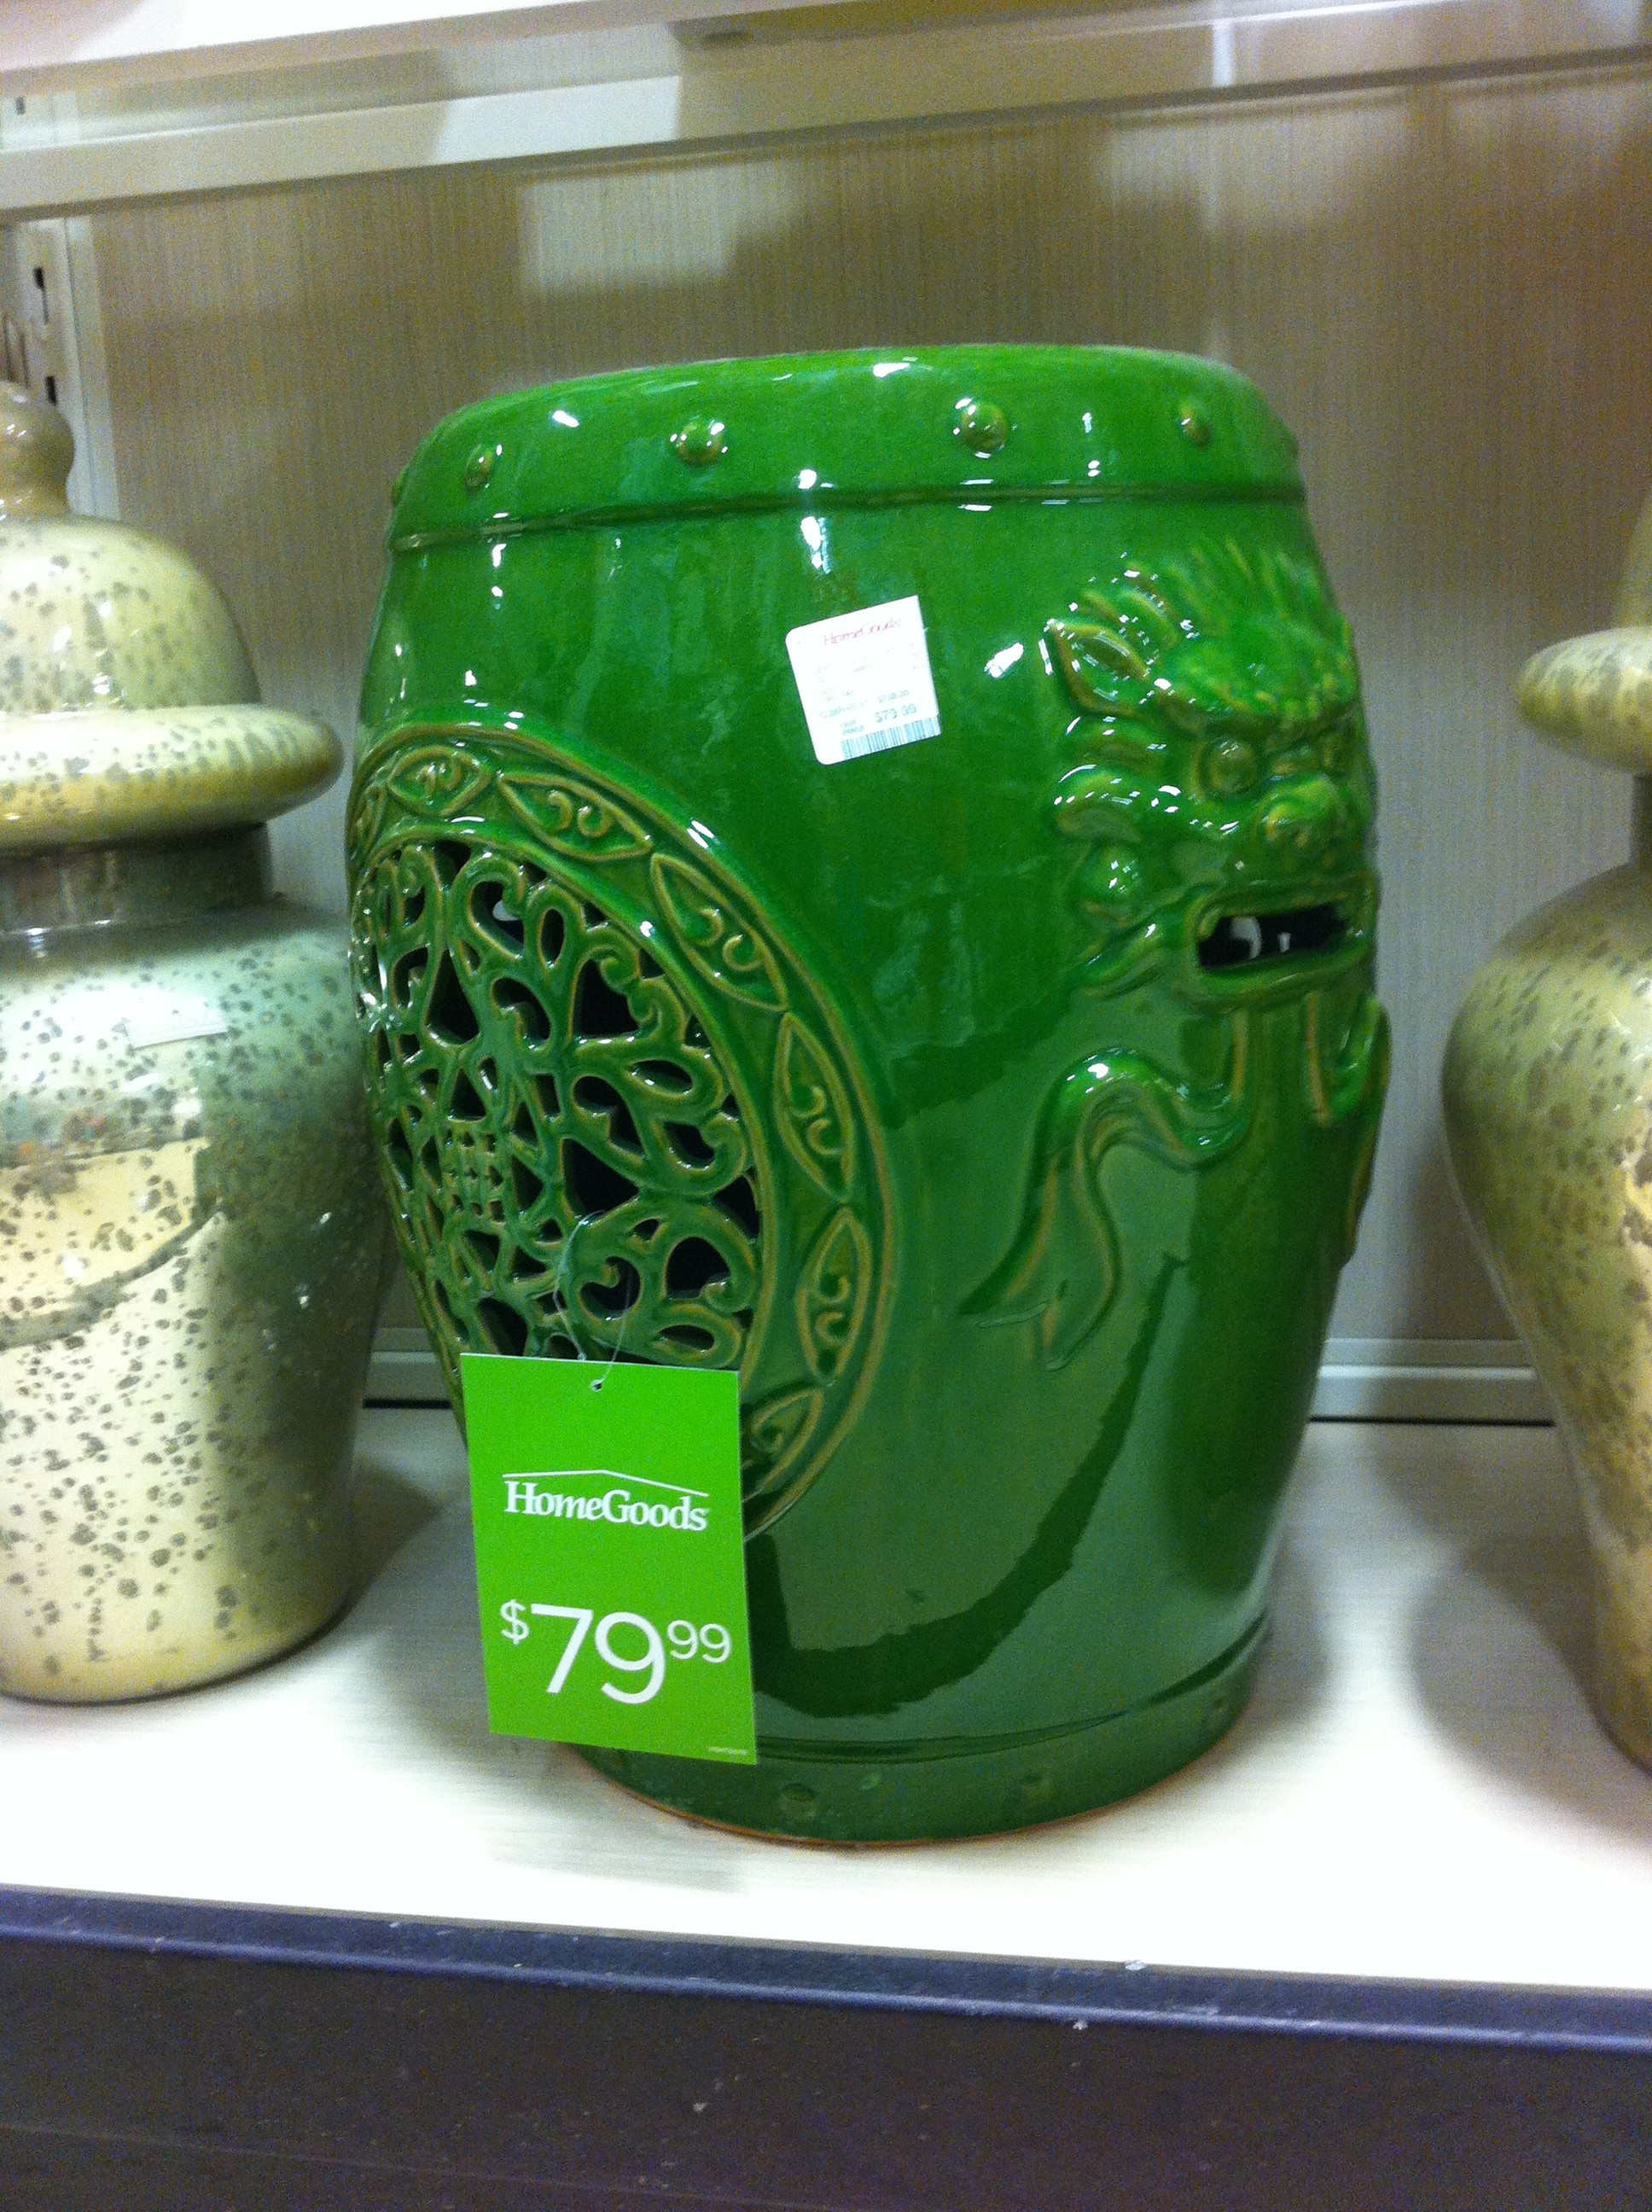 Image of green ceramic garden seat from HomeGoods